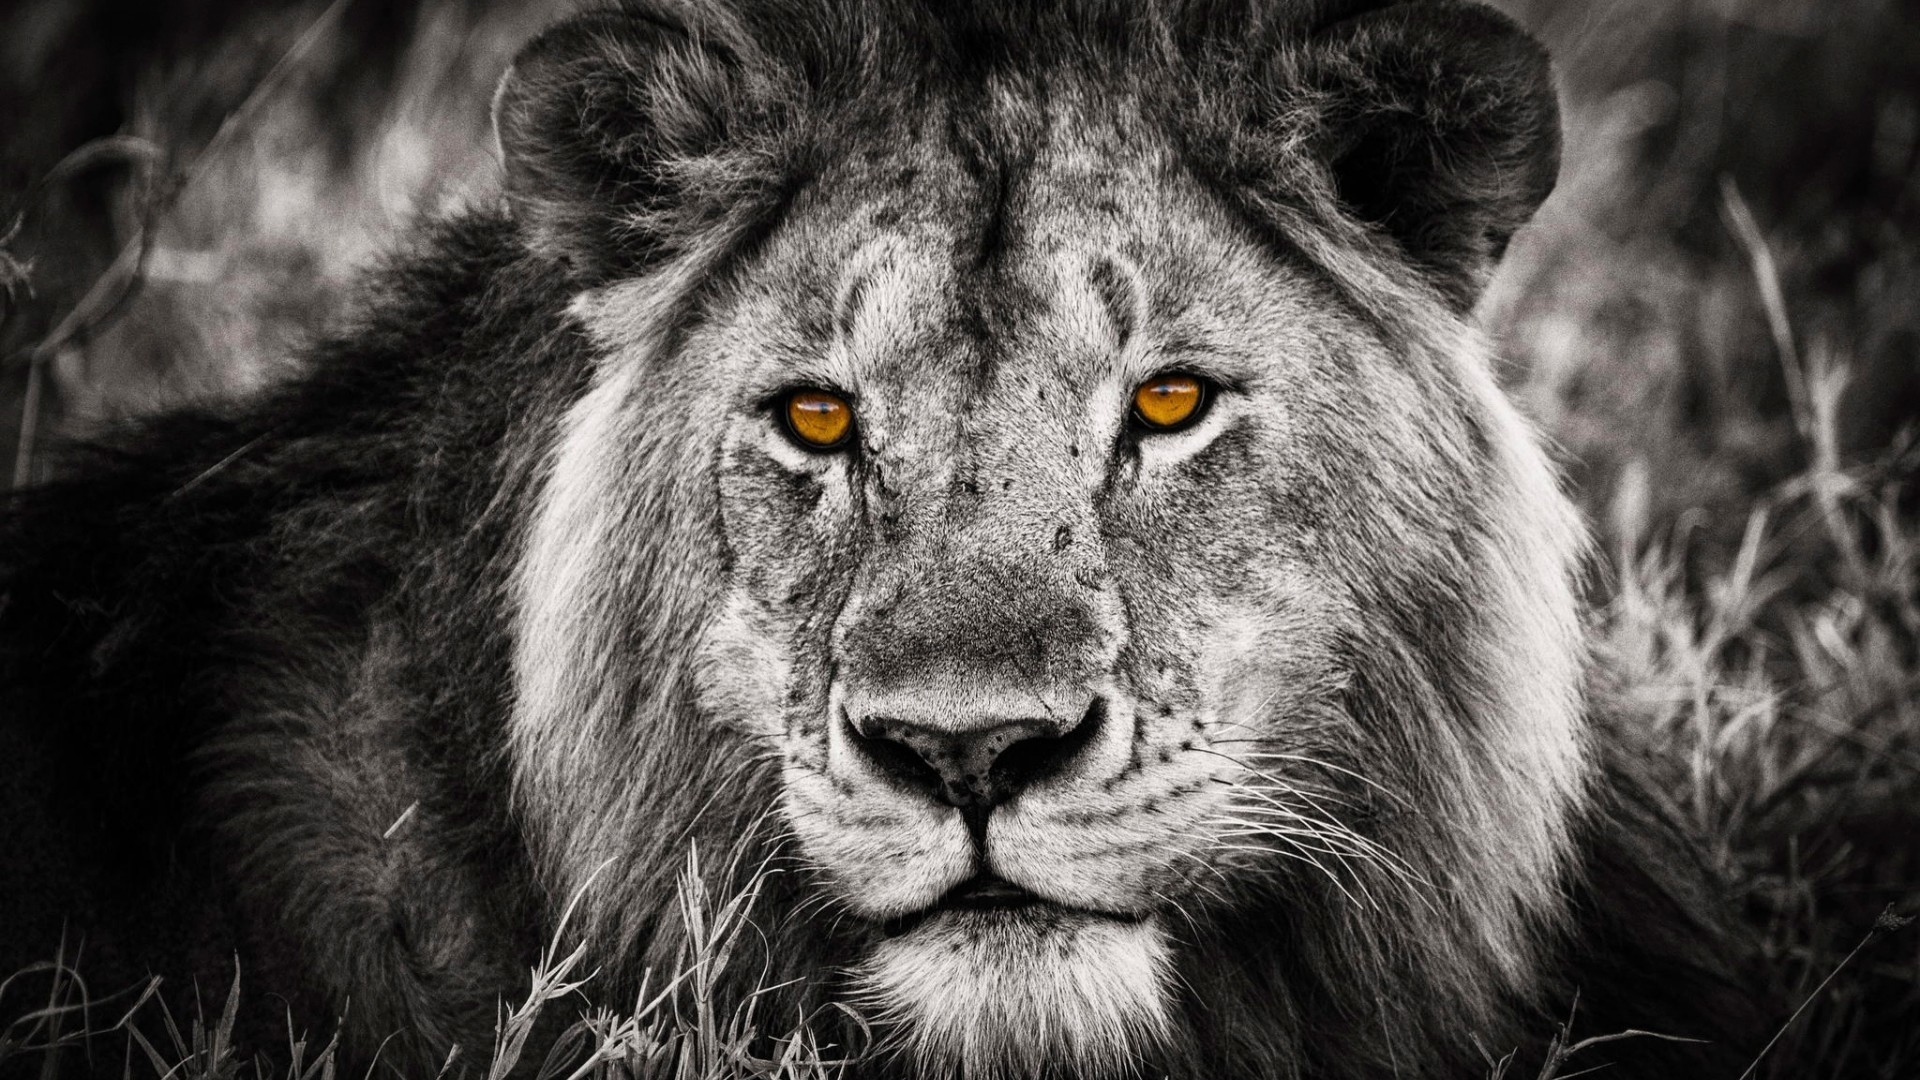 Res: 1920x1080, Black and White Lion Portrait for 1920 x 1080 HDTV 1080p resolution